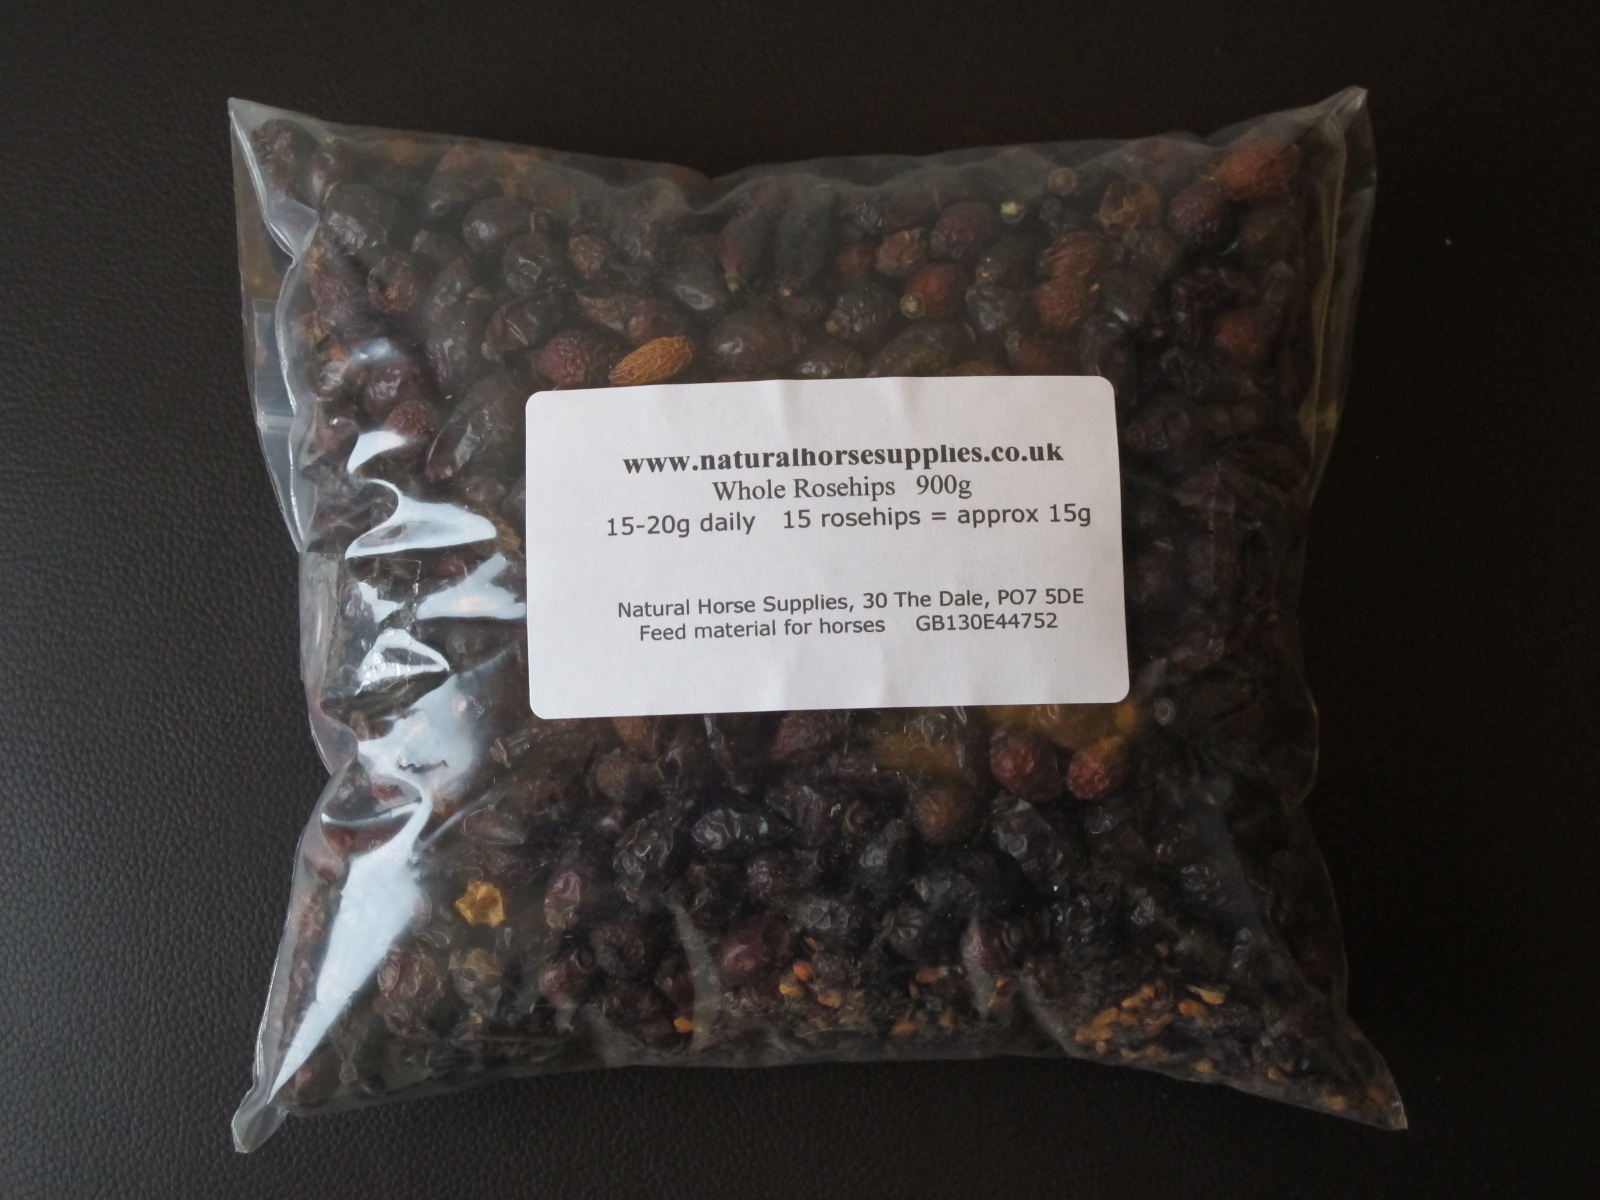 Whole rosehips 900g